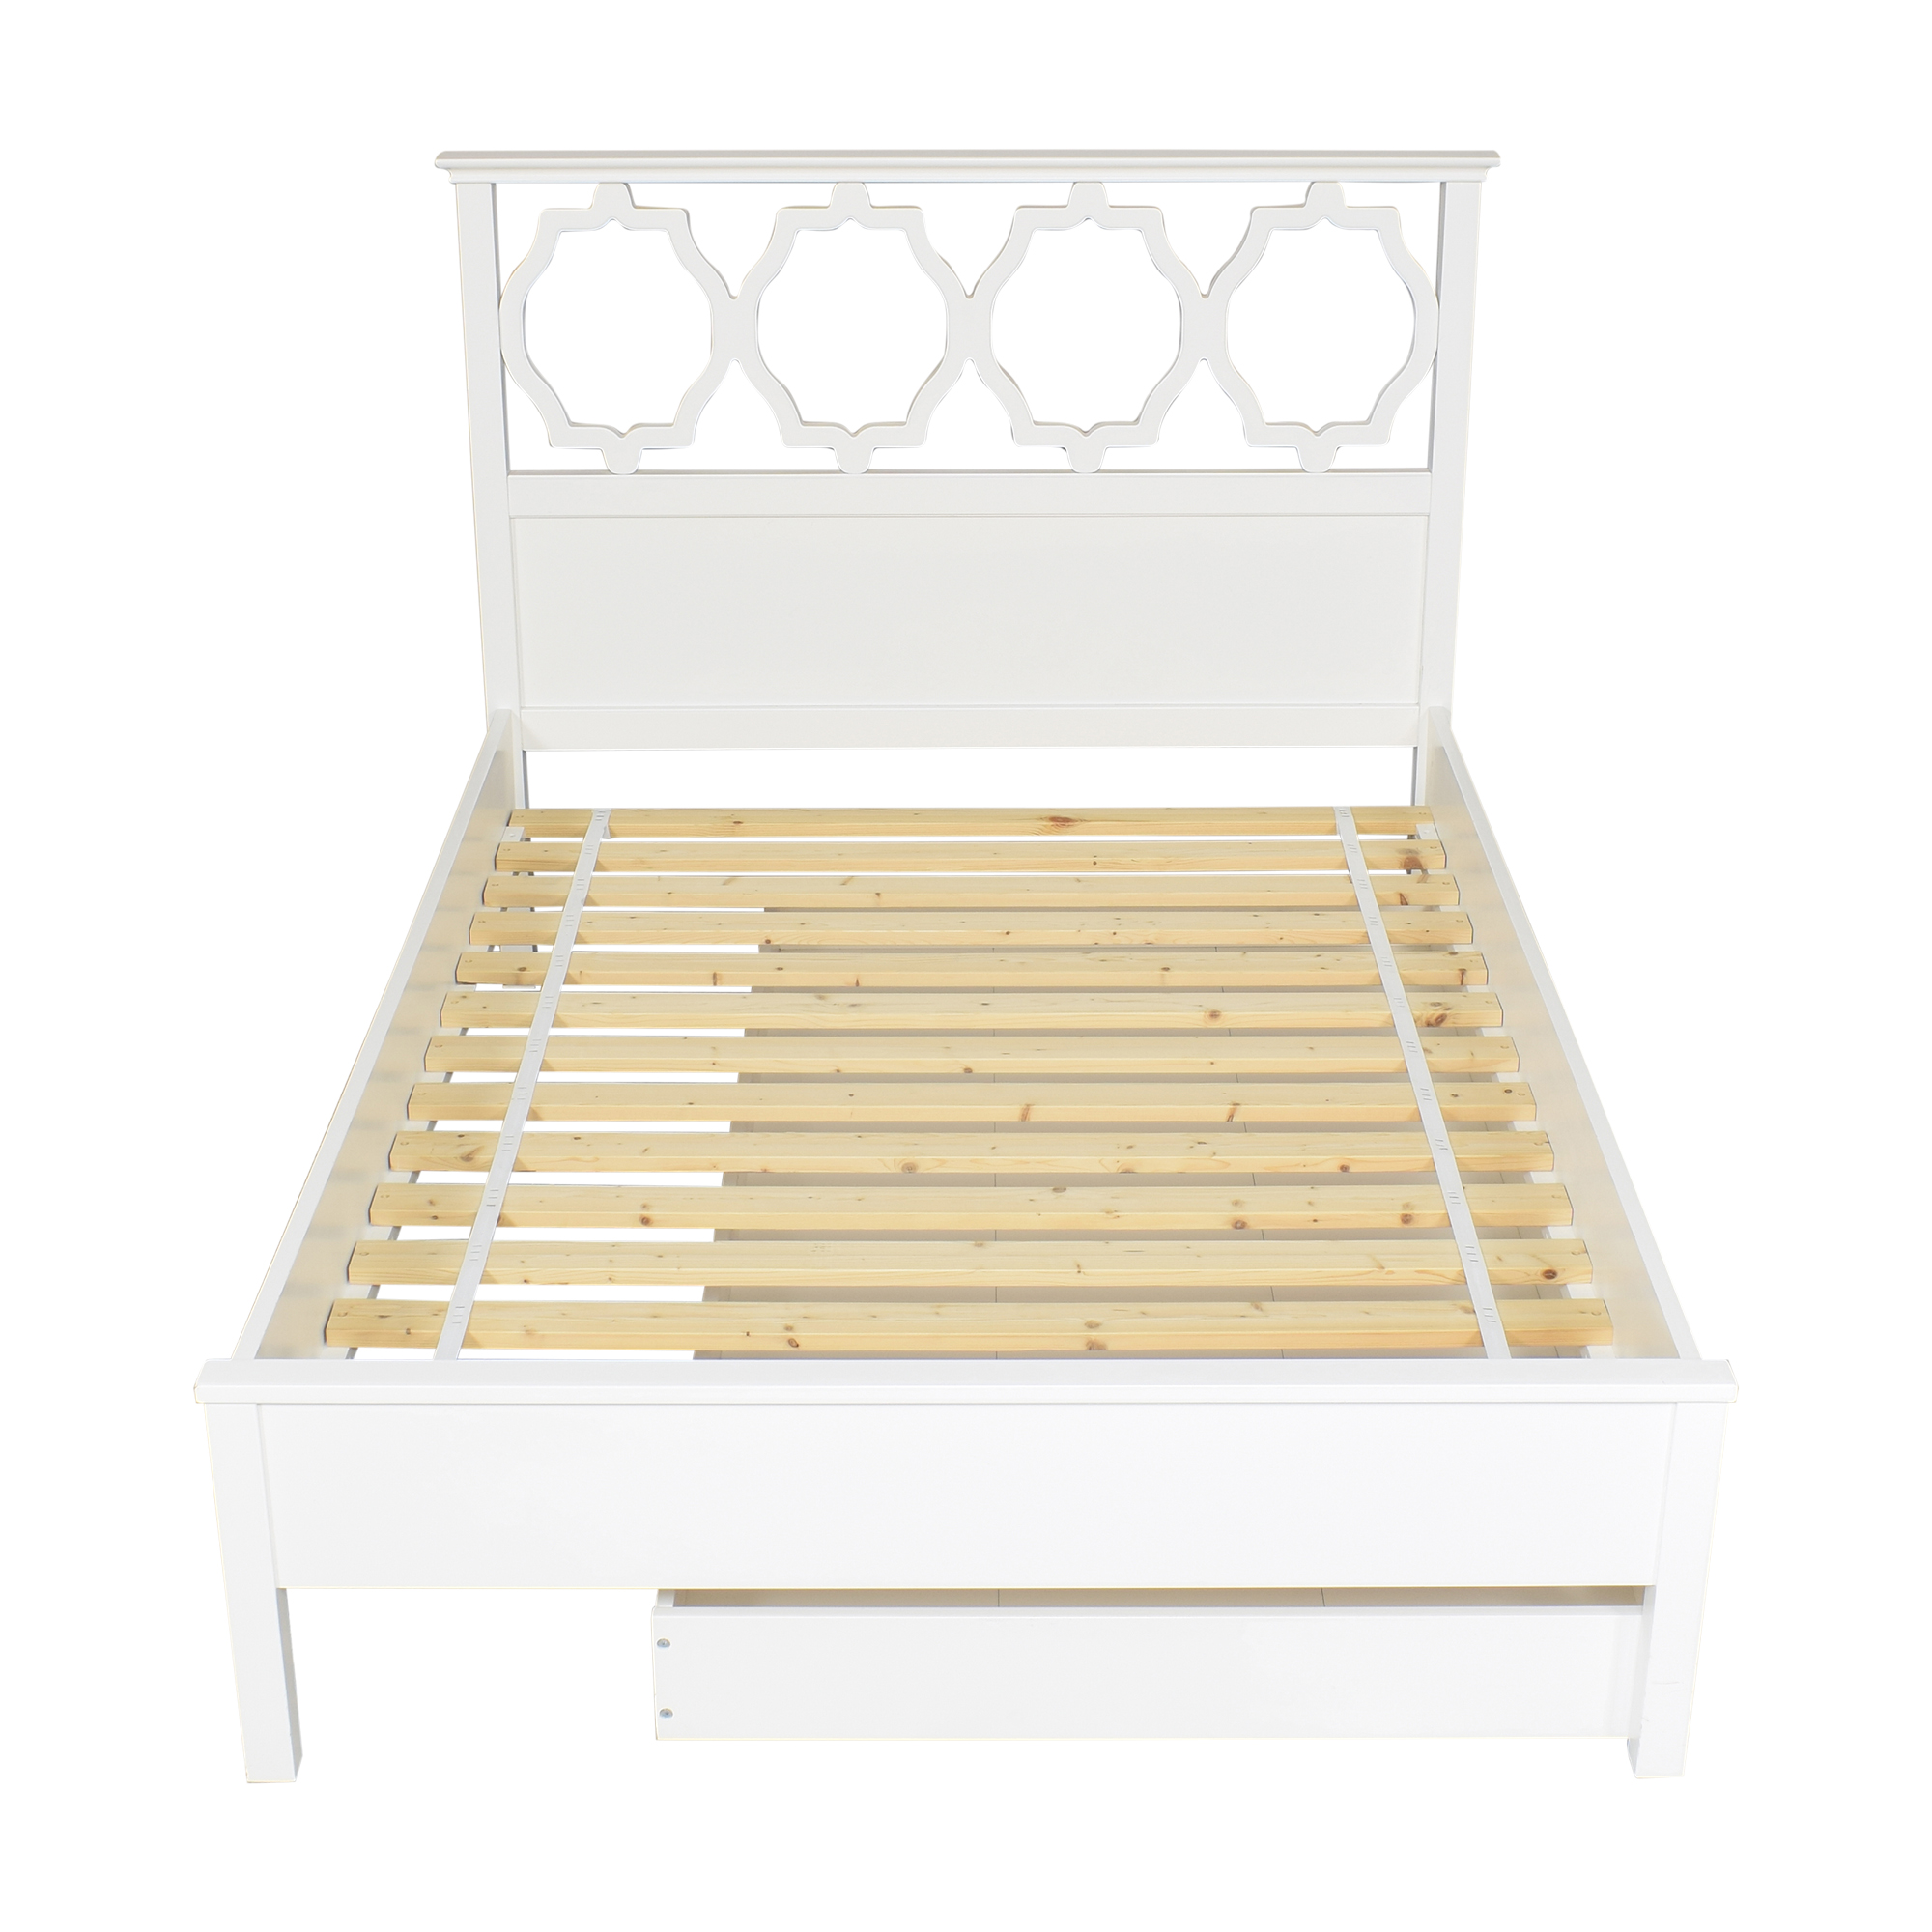 Pottery Barn Teen Pottery Barn Teen Elsie Full Bed with Trundle pa